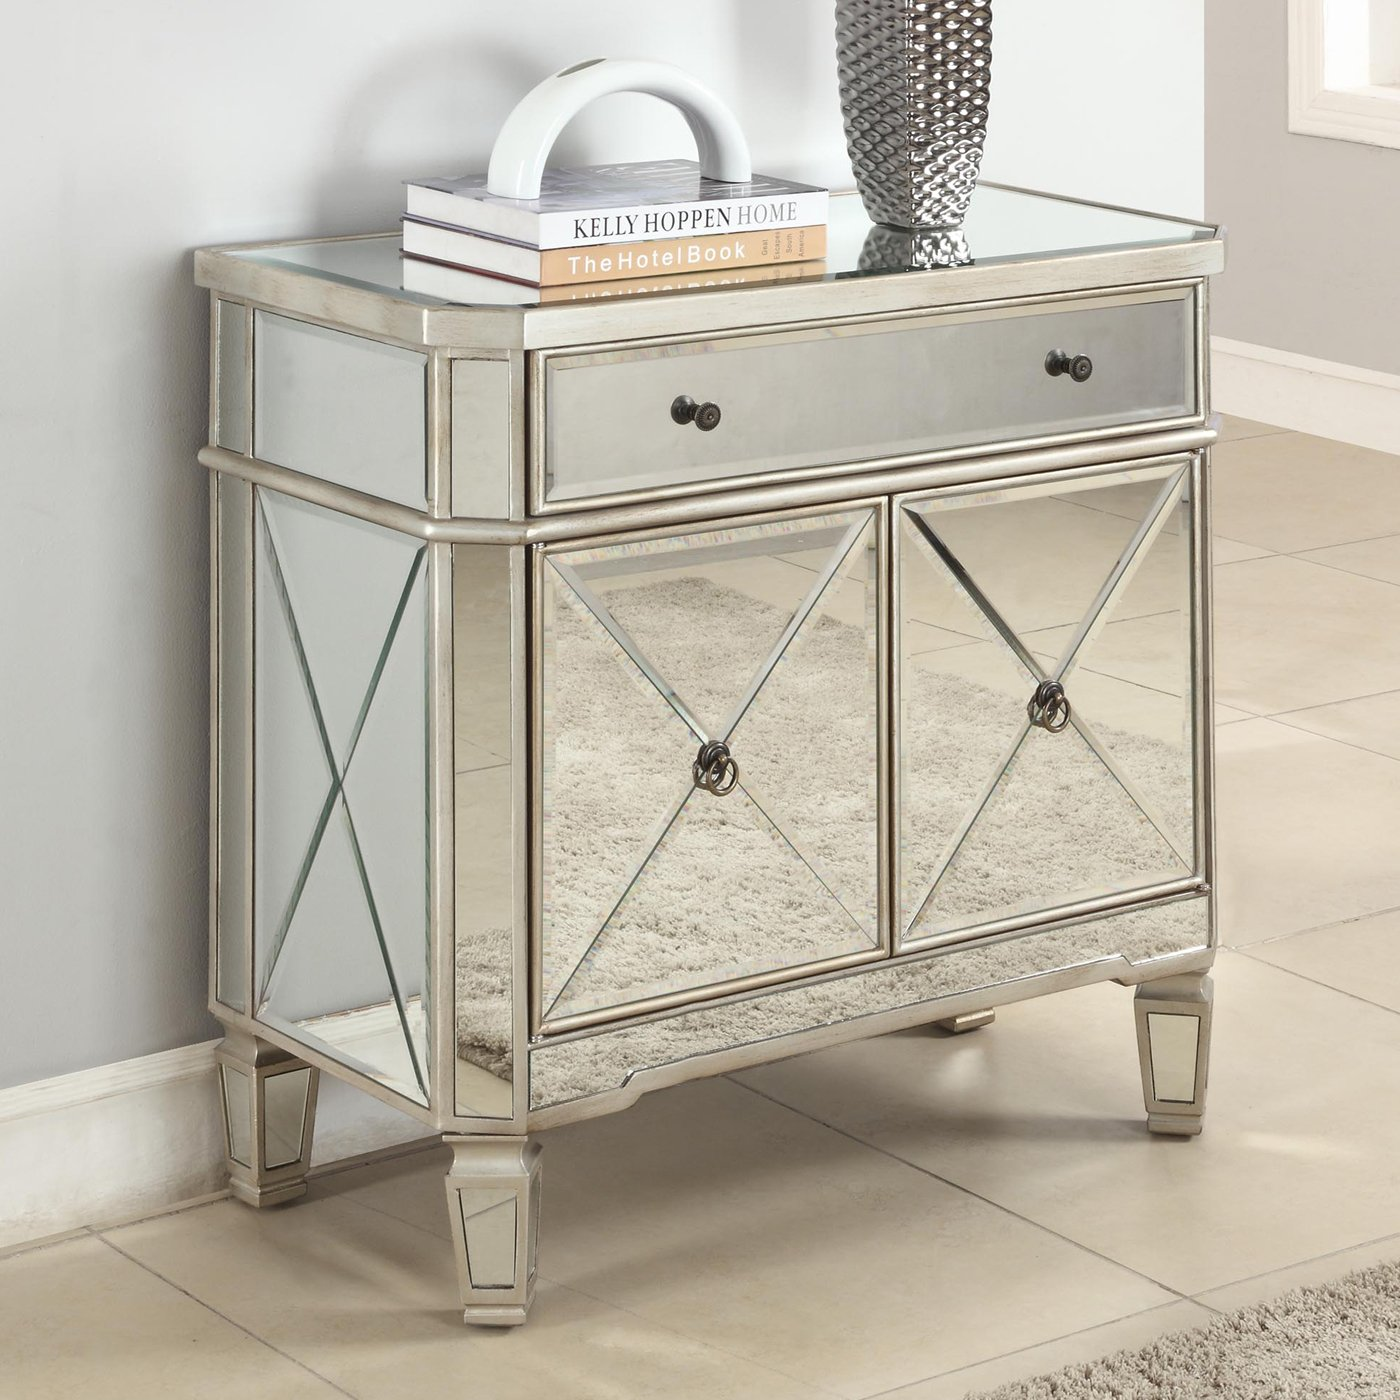 diy mirrored side table beblicanto designs ideas glass accent with drawer pier one furniture dining tables farmhouse room kitchen light shades large square rustic coffee sofa and